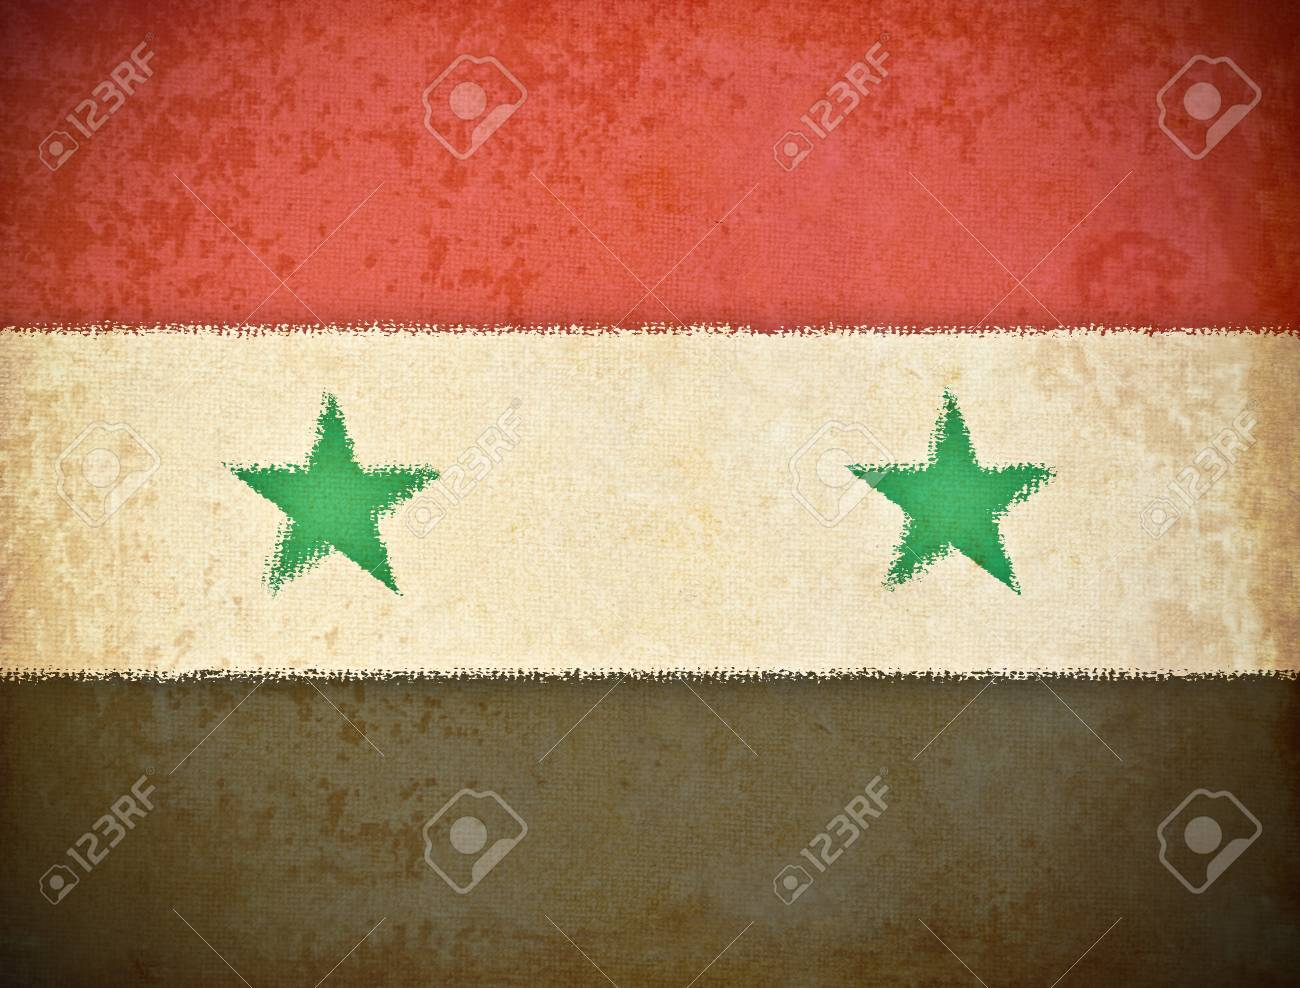 old grunge paper with Syria flag background Stock Photo - 12542820